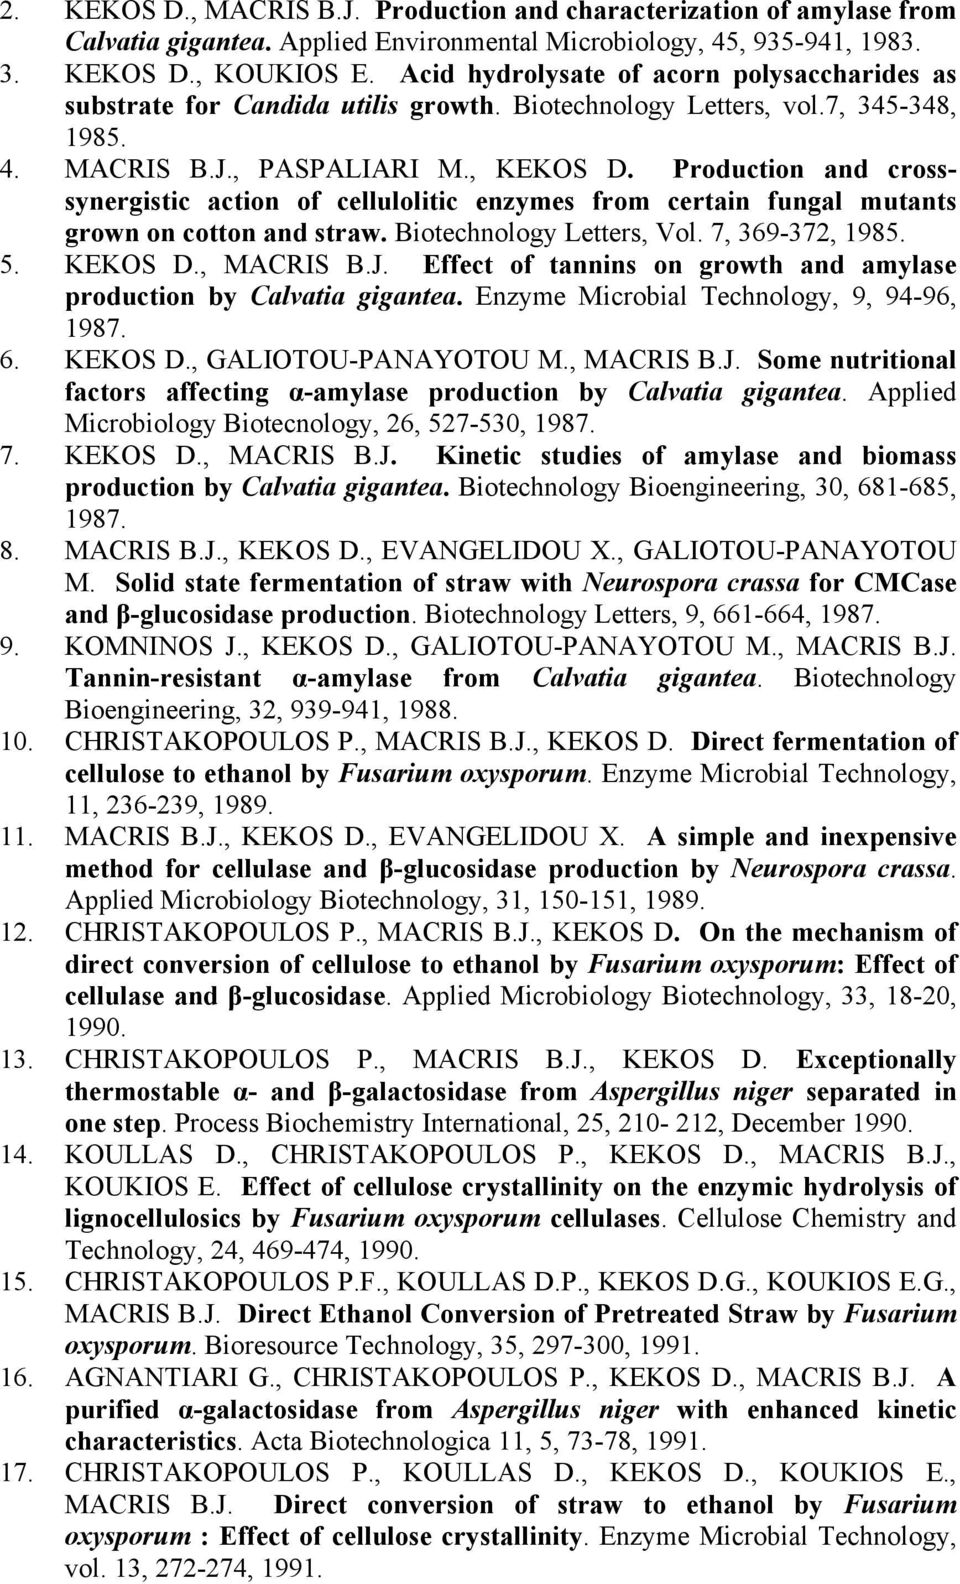 Production and crosssynergistic action of cellulolitic enzymes from certain fungal mutants grown on cotton and straw. Biotechnology Letters, Vol. 7, 369-372, 1985. 5. KEKOS D., MACRIS B.J.